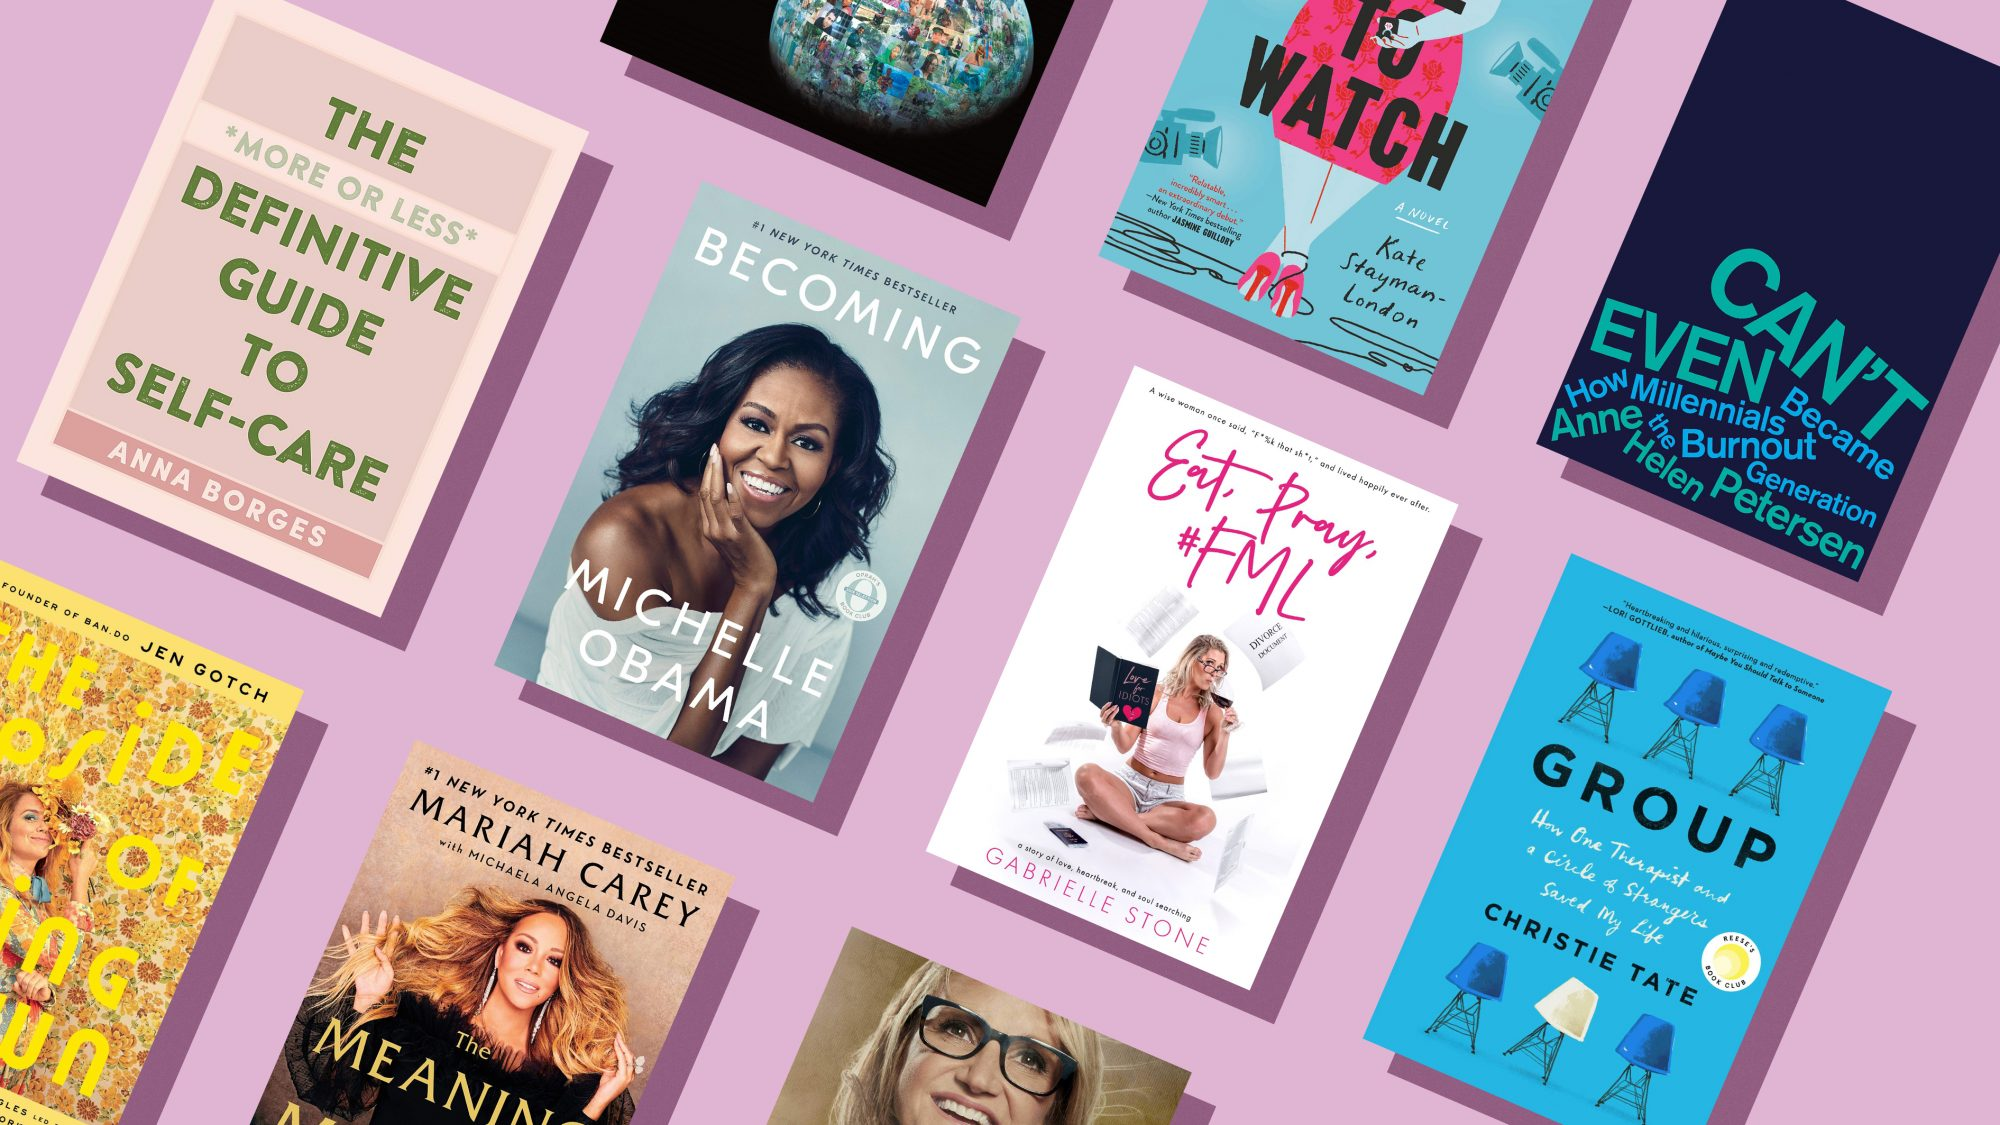 10 Self-Care Books to Read When You're Busy and Stressed